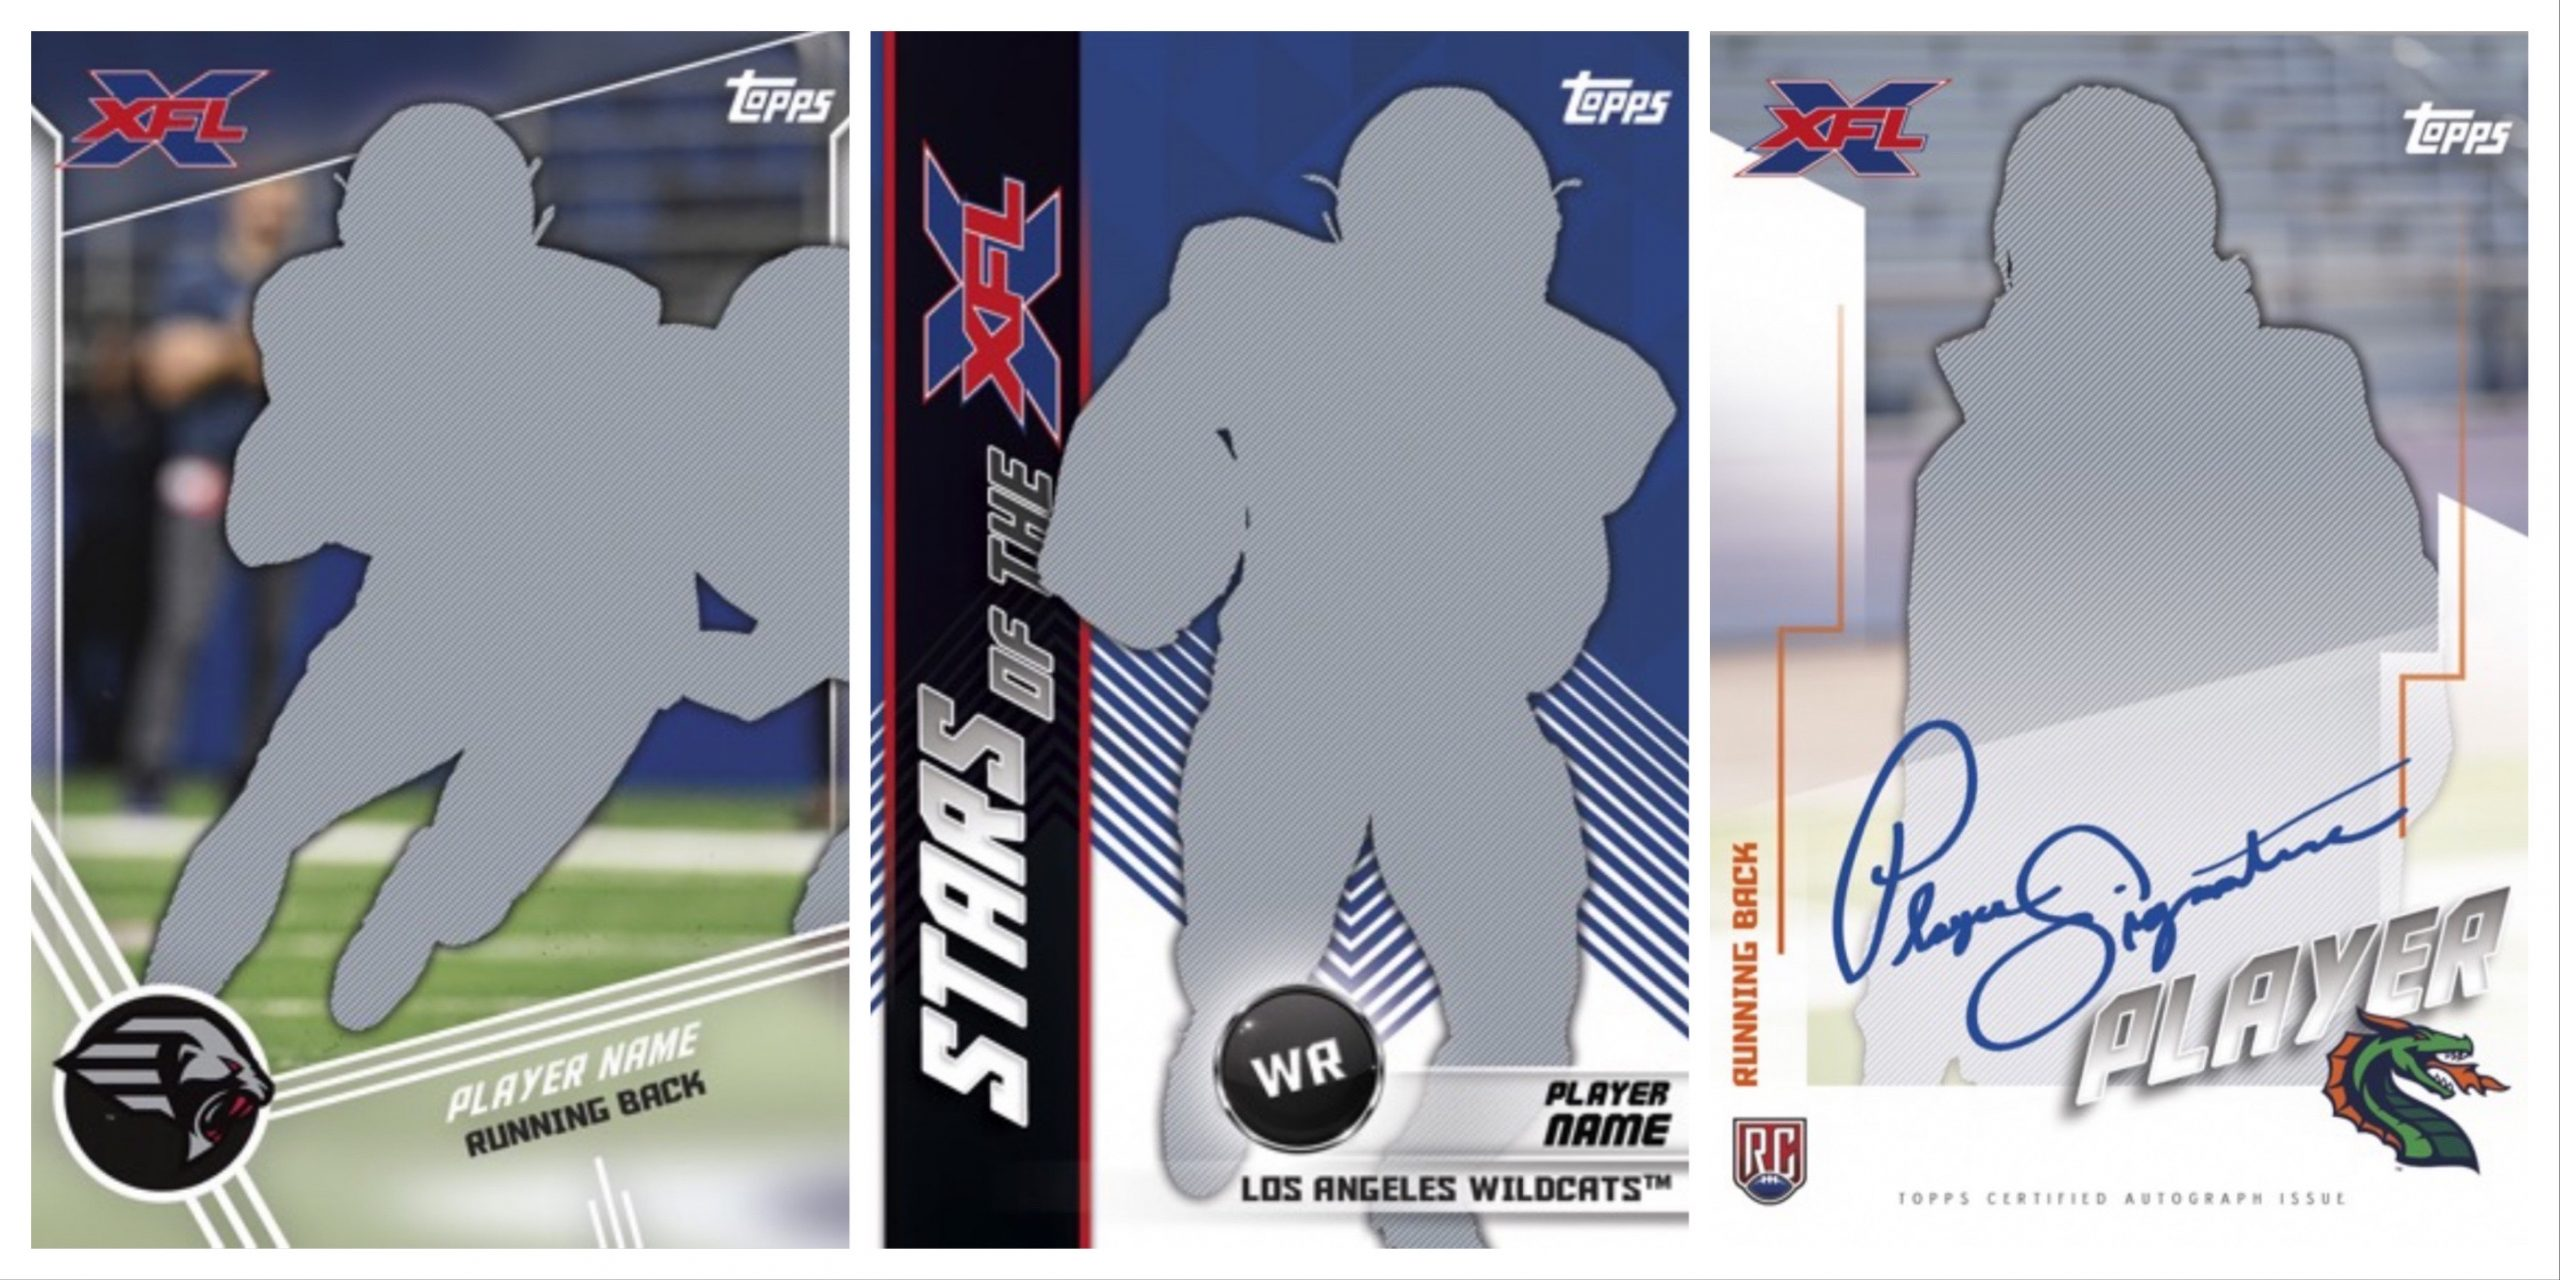 Topps XFL 2020 Trading Cards